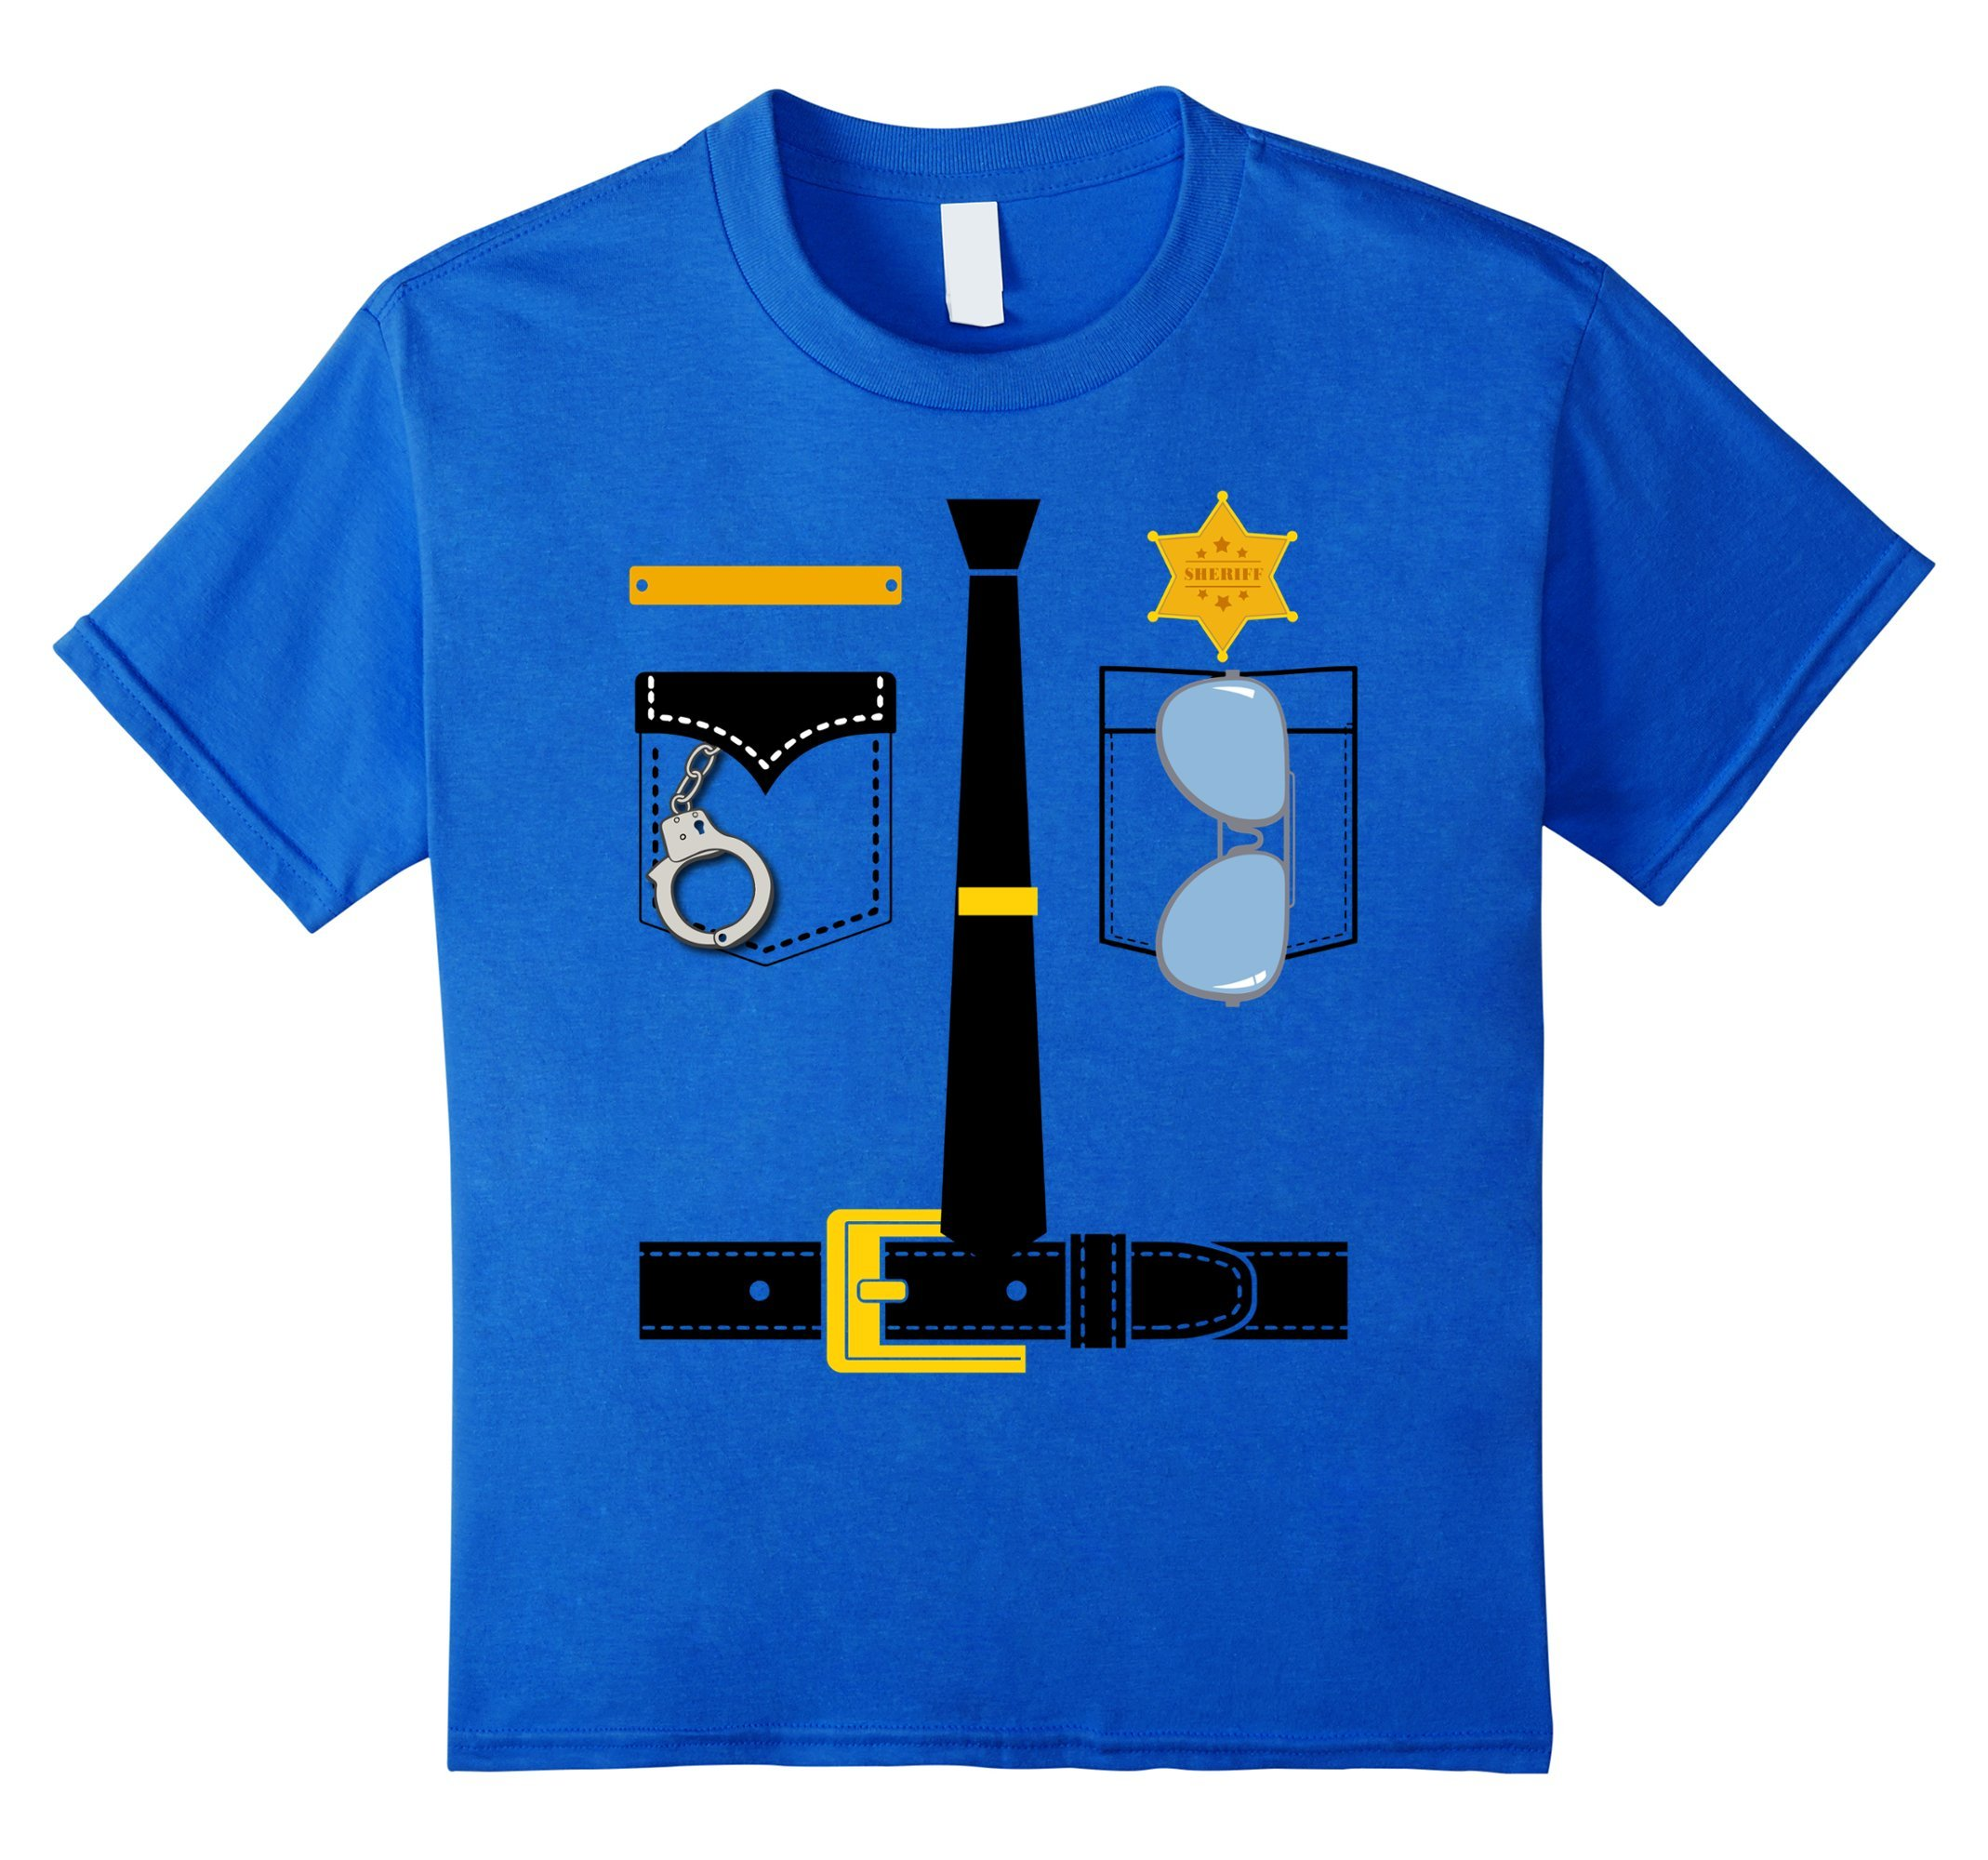 Kids Police Uniform Costume Halloween Kids T-Shirt 10 Royal Blue